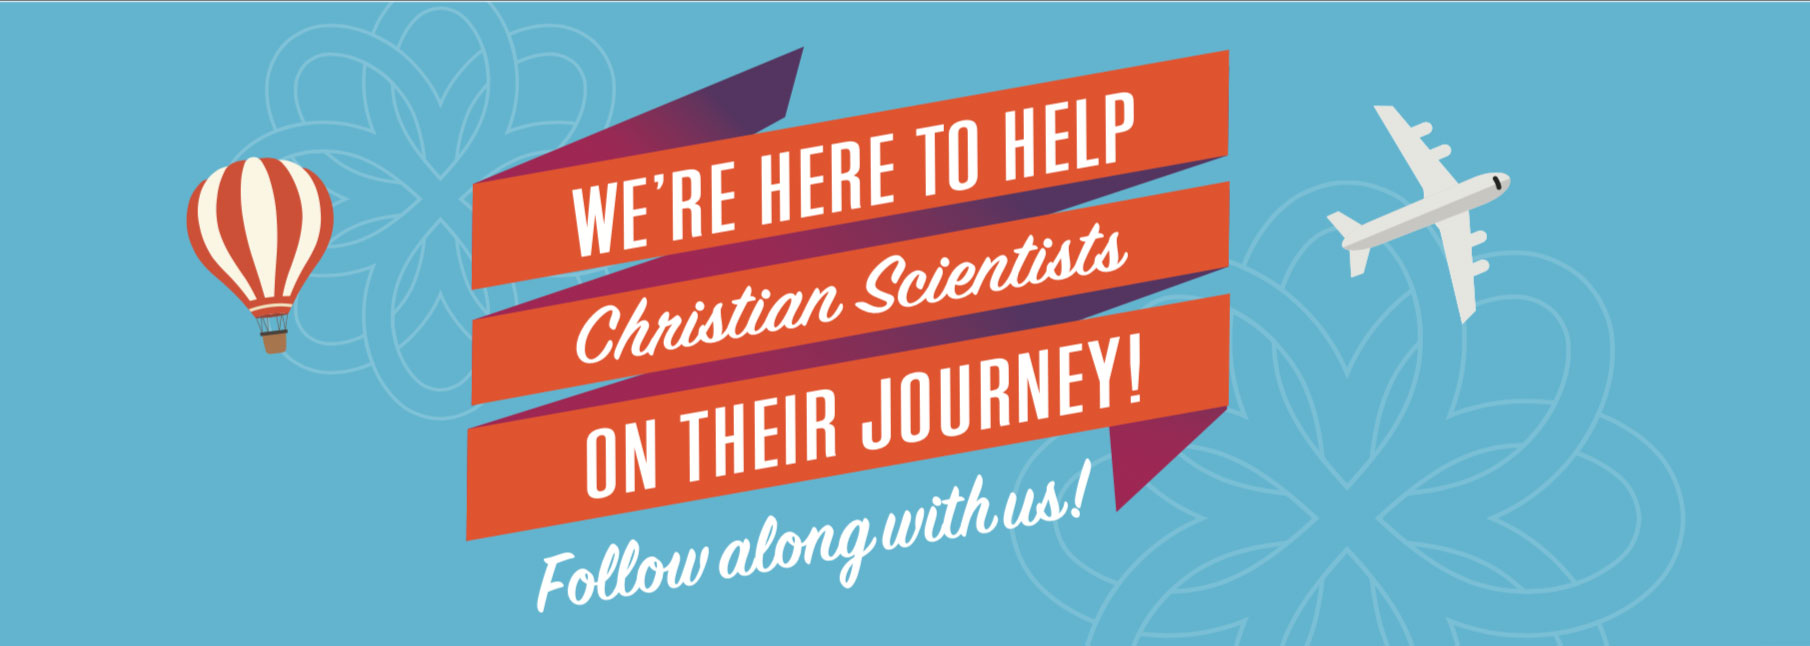 We're Here to Help Christian Scientists on Their Journey! Follow Along With Us!